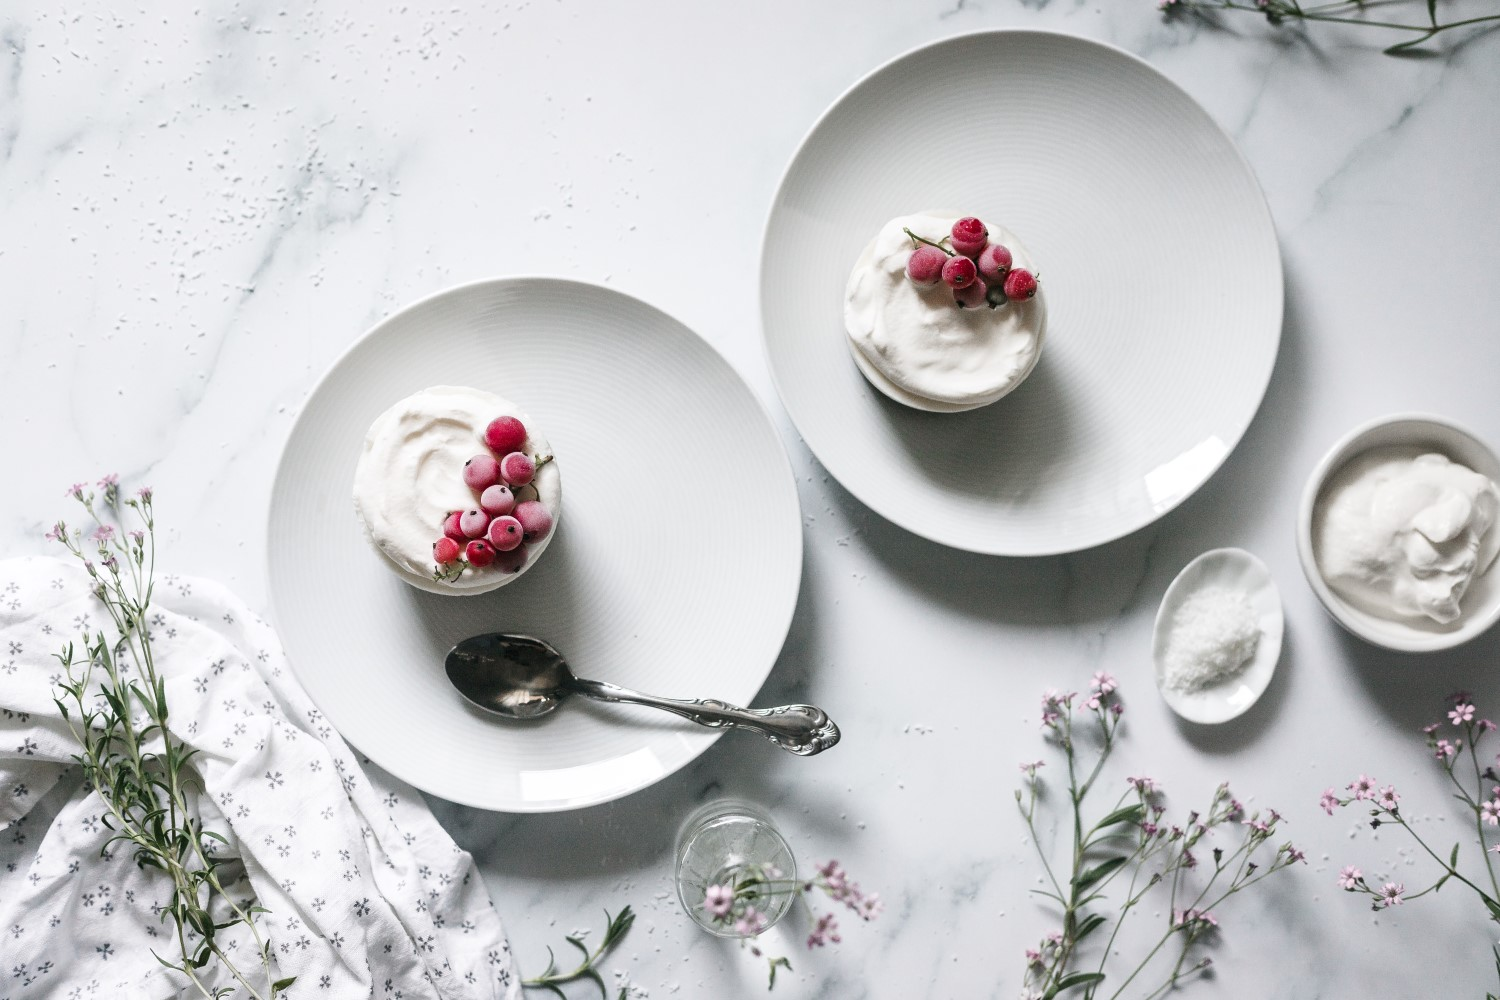 These no-bake frozen coconut cakes with sweet creamed coconut and Greek yogurt on top of a no-bake almond crust are the perfect summer desserts. Add some whipped cream and seasonal berries and you're in it for a win!